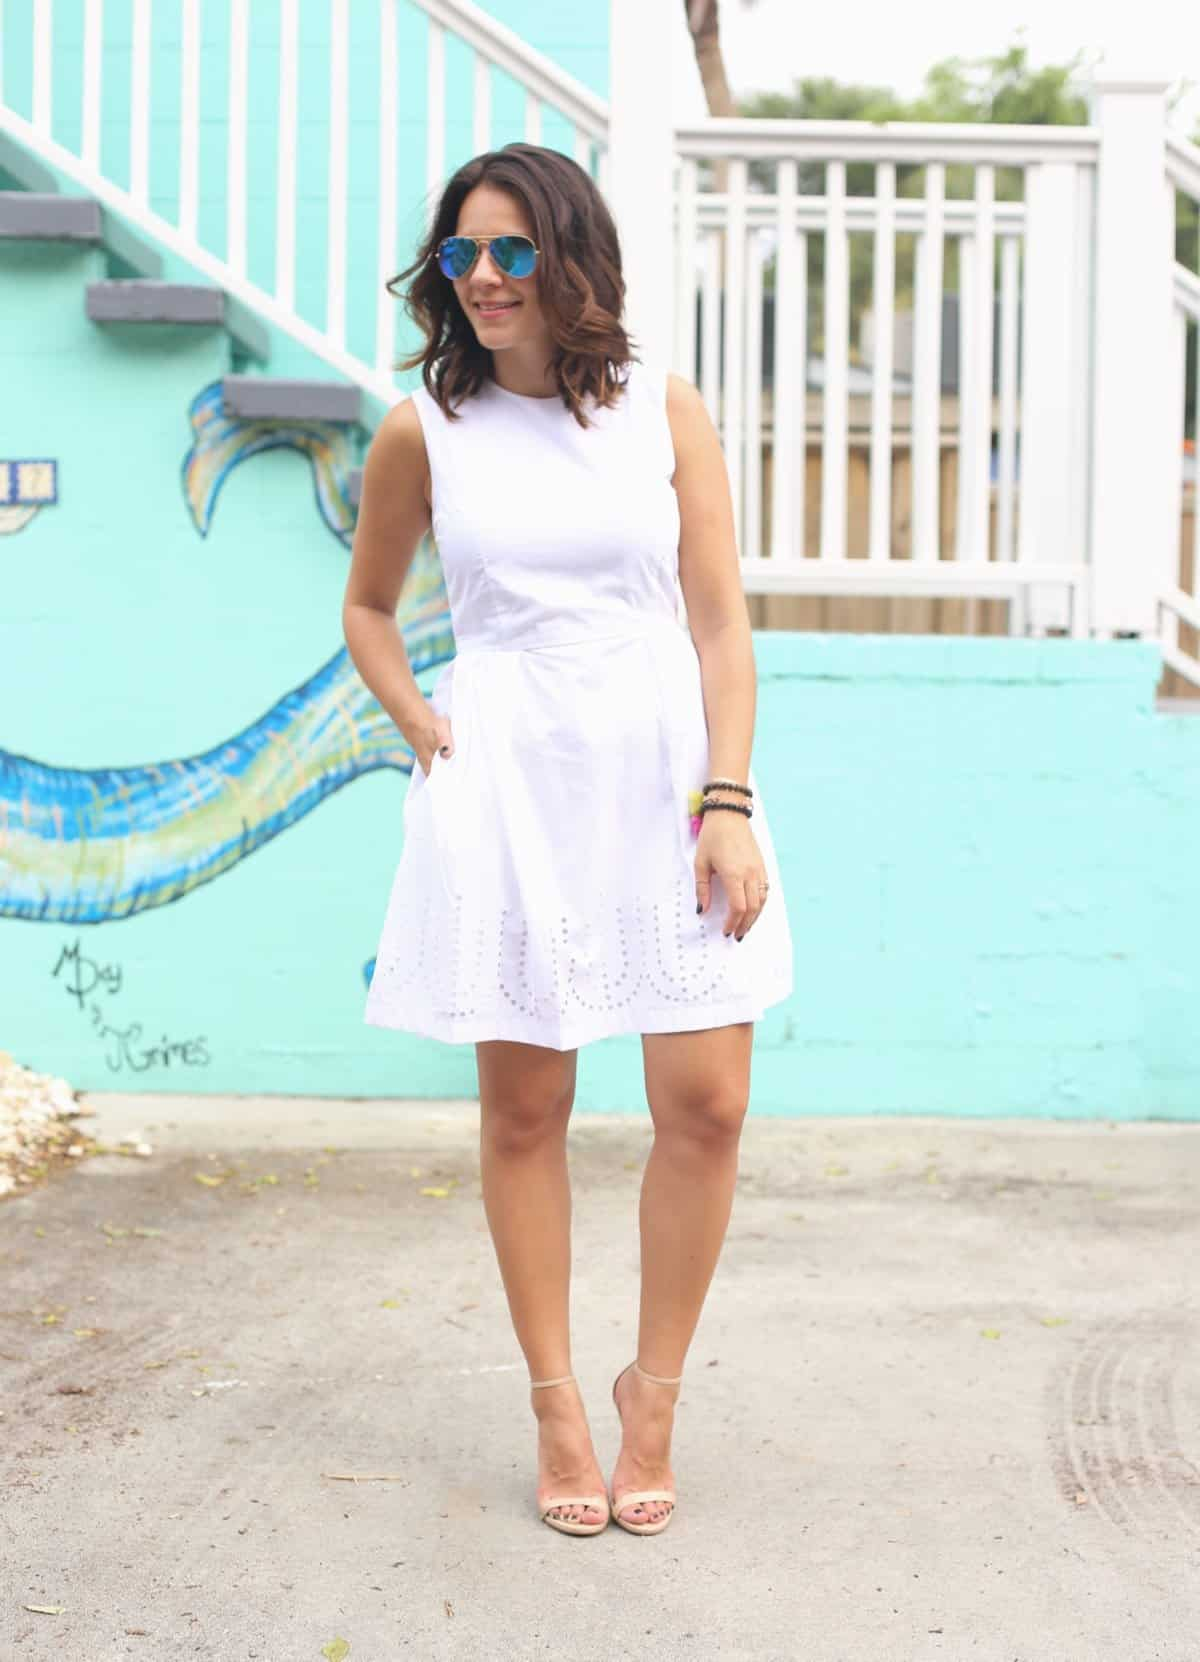 How to style a white dress for summer